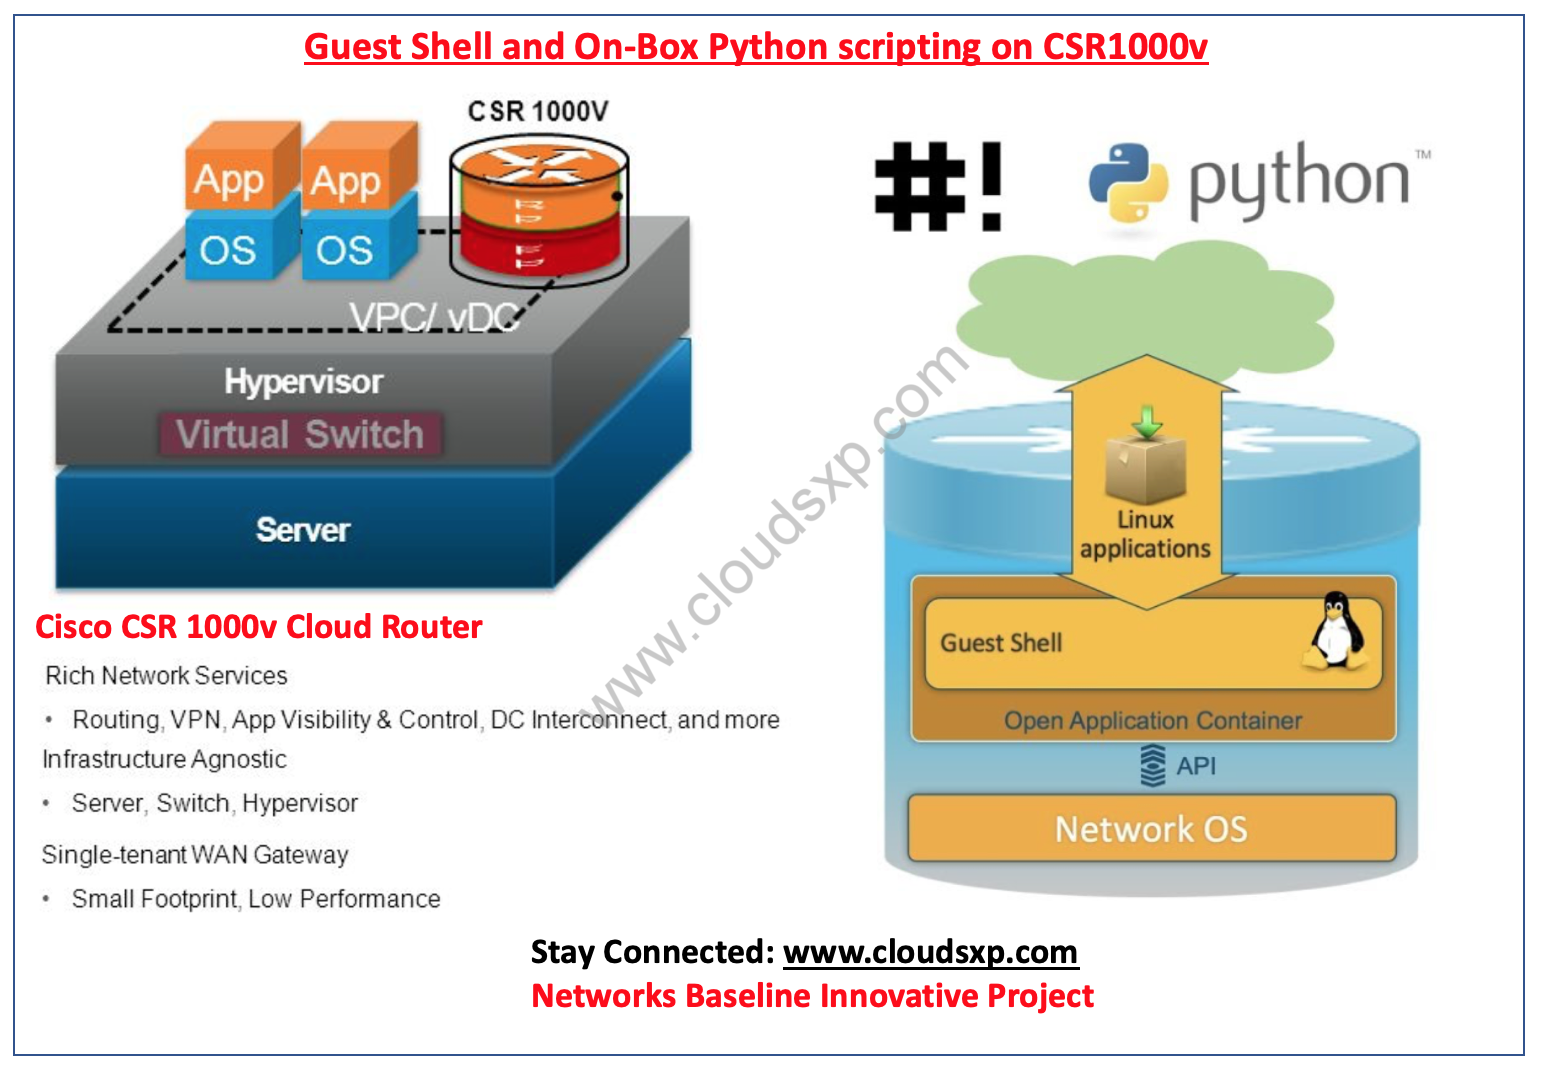 Setup Guest shell and On-Box Python scripting on CSR1000v